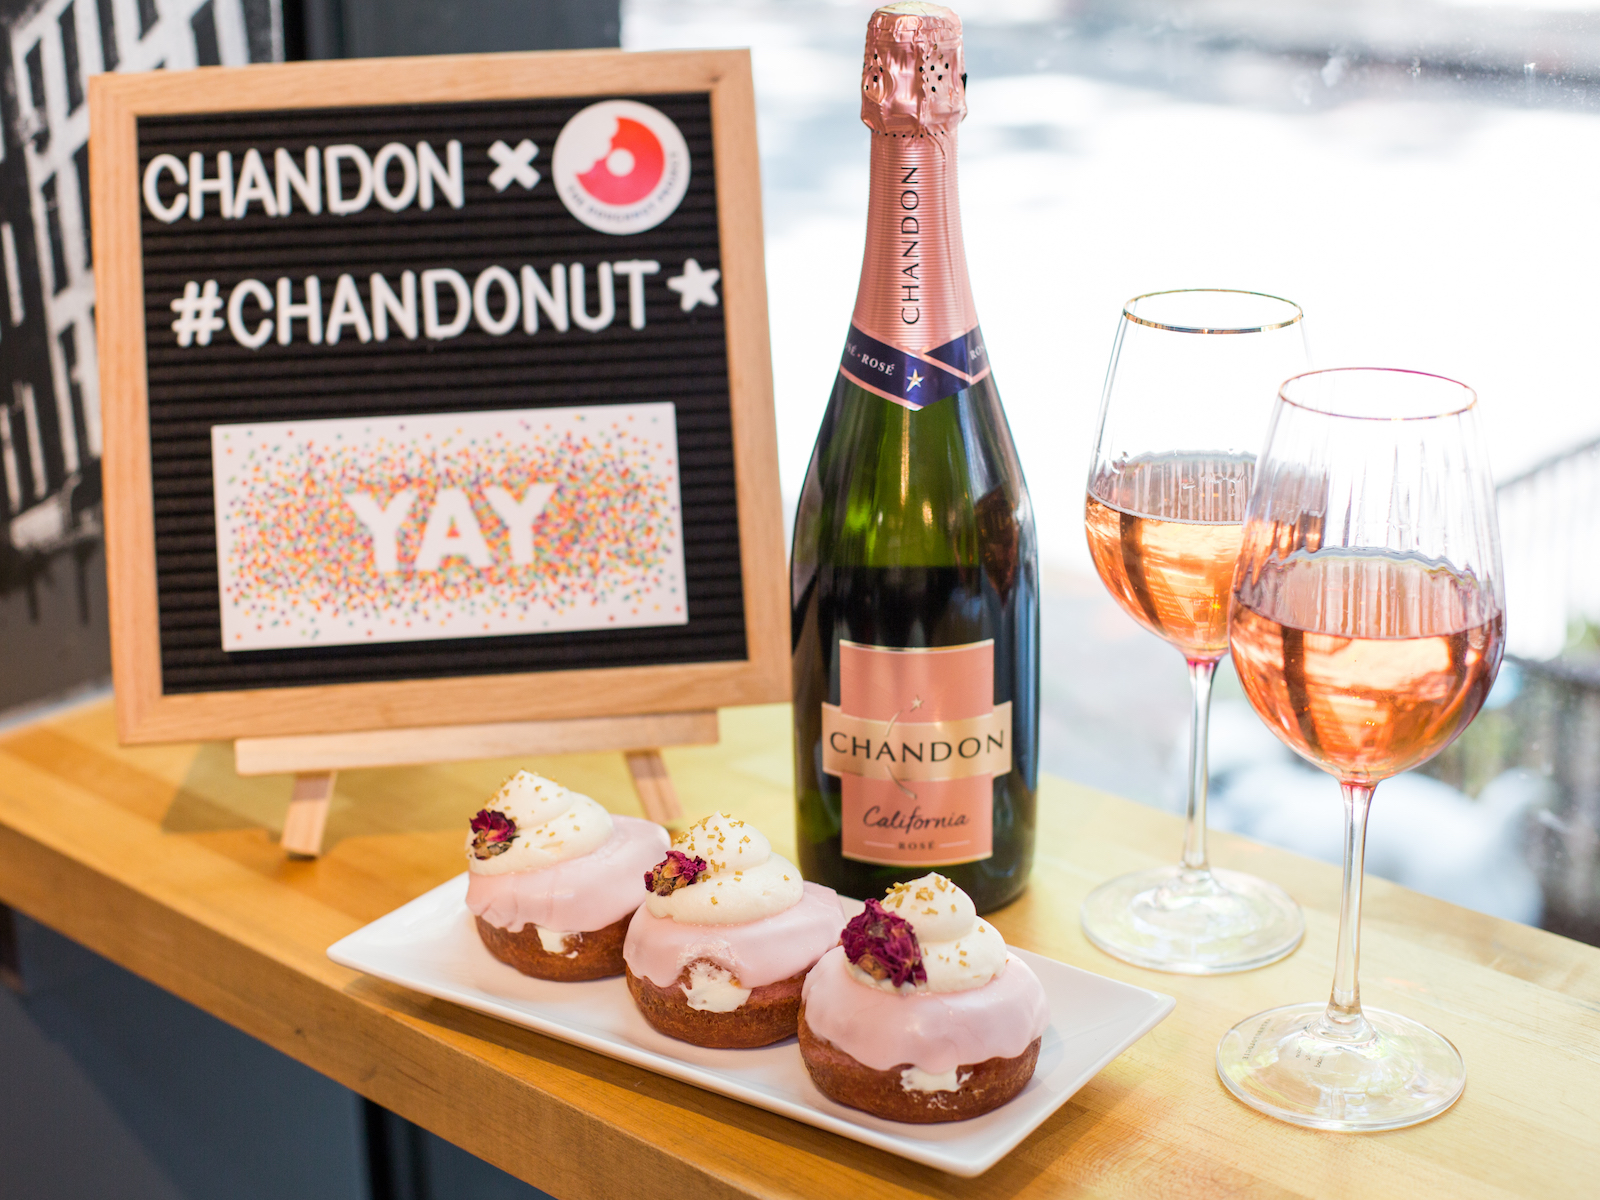 Chandon rose donut